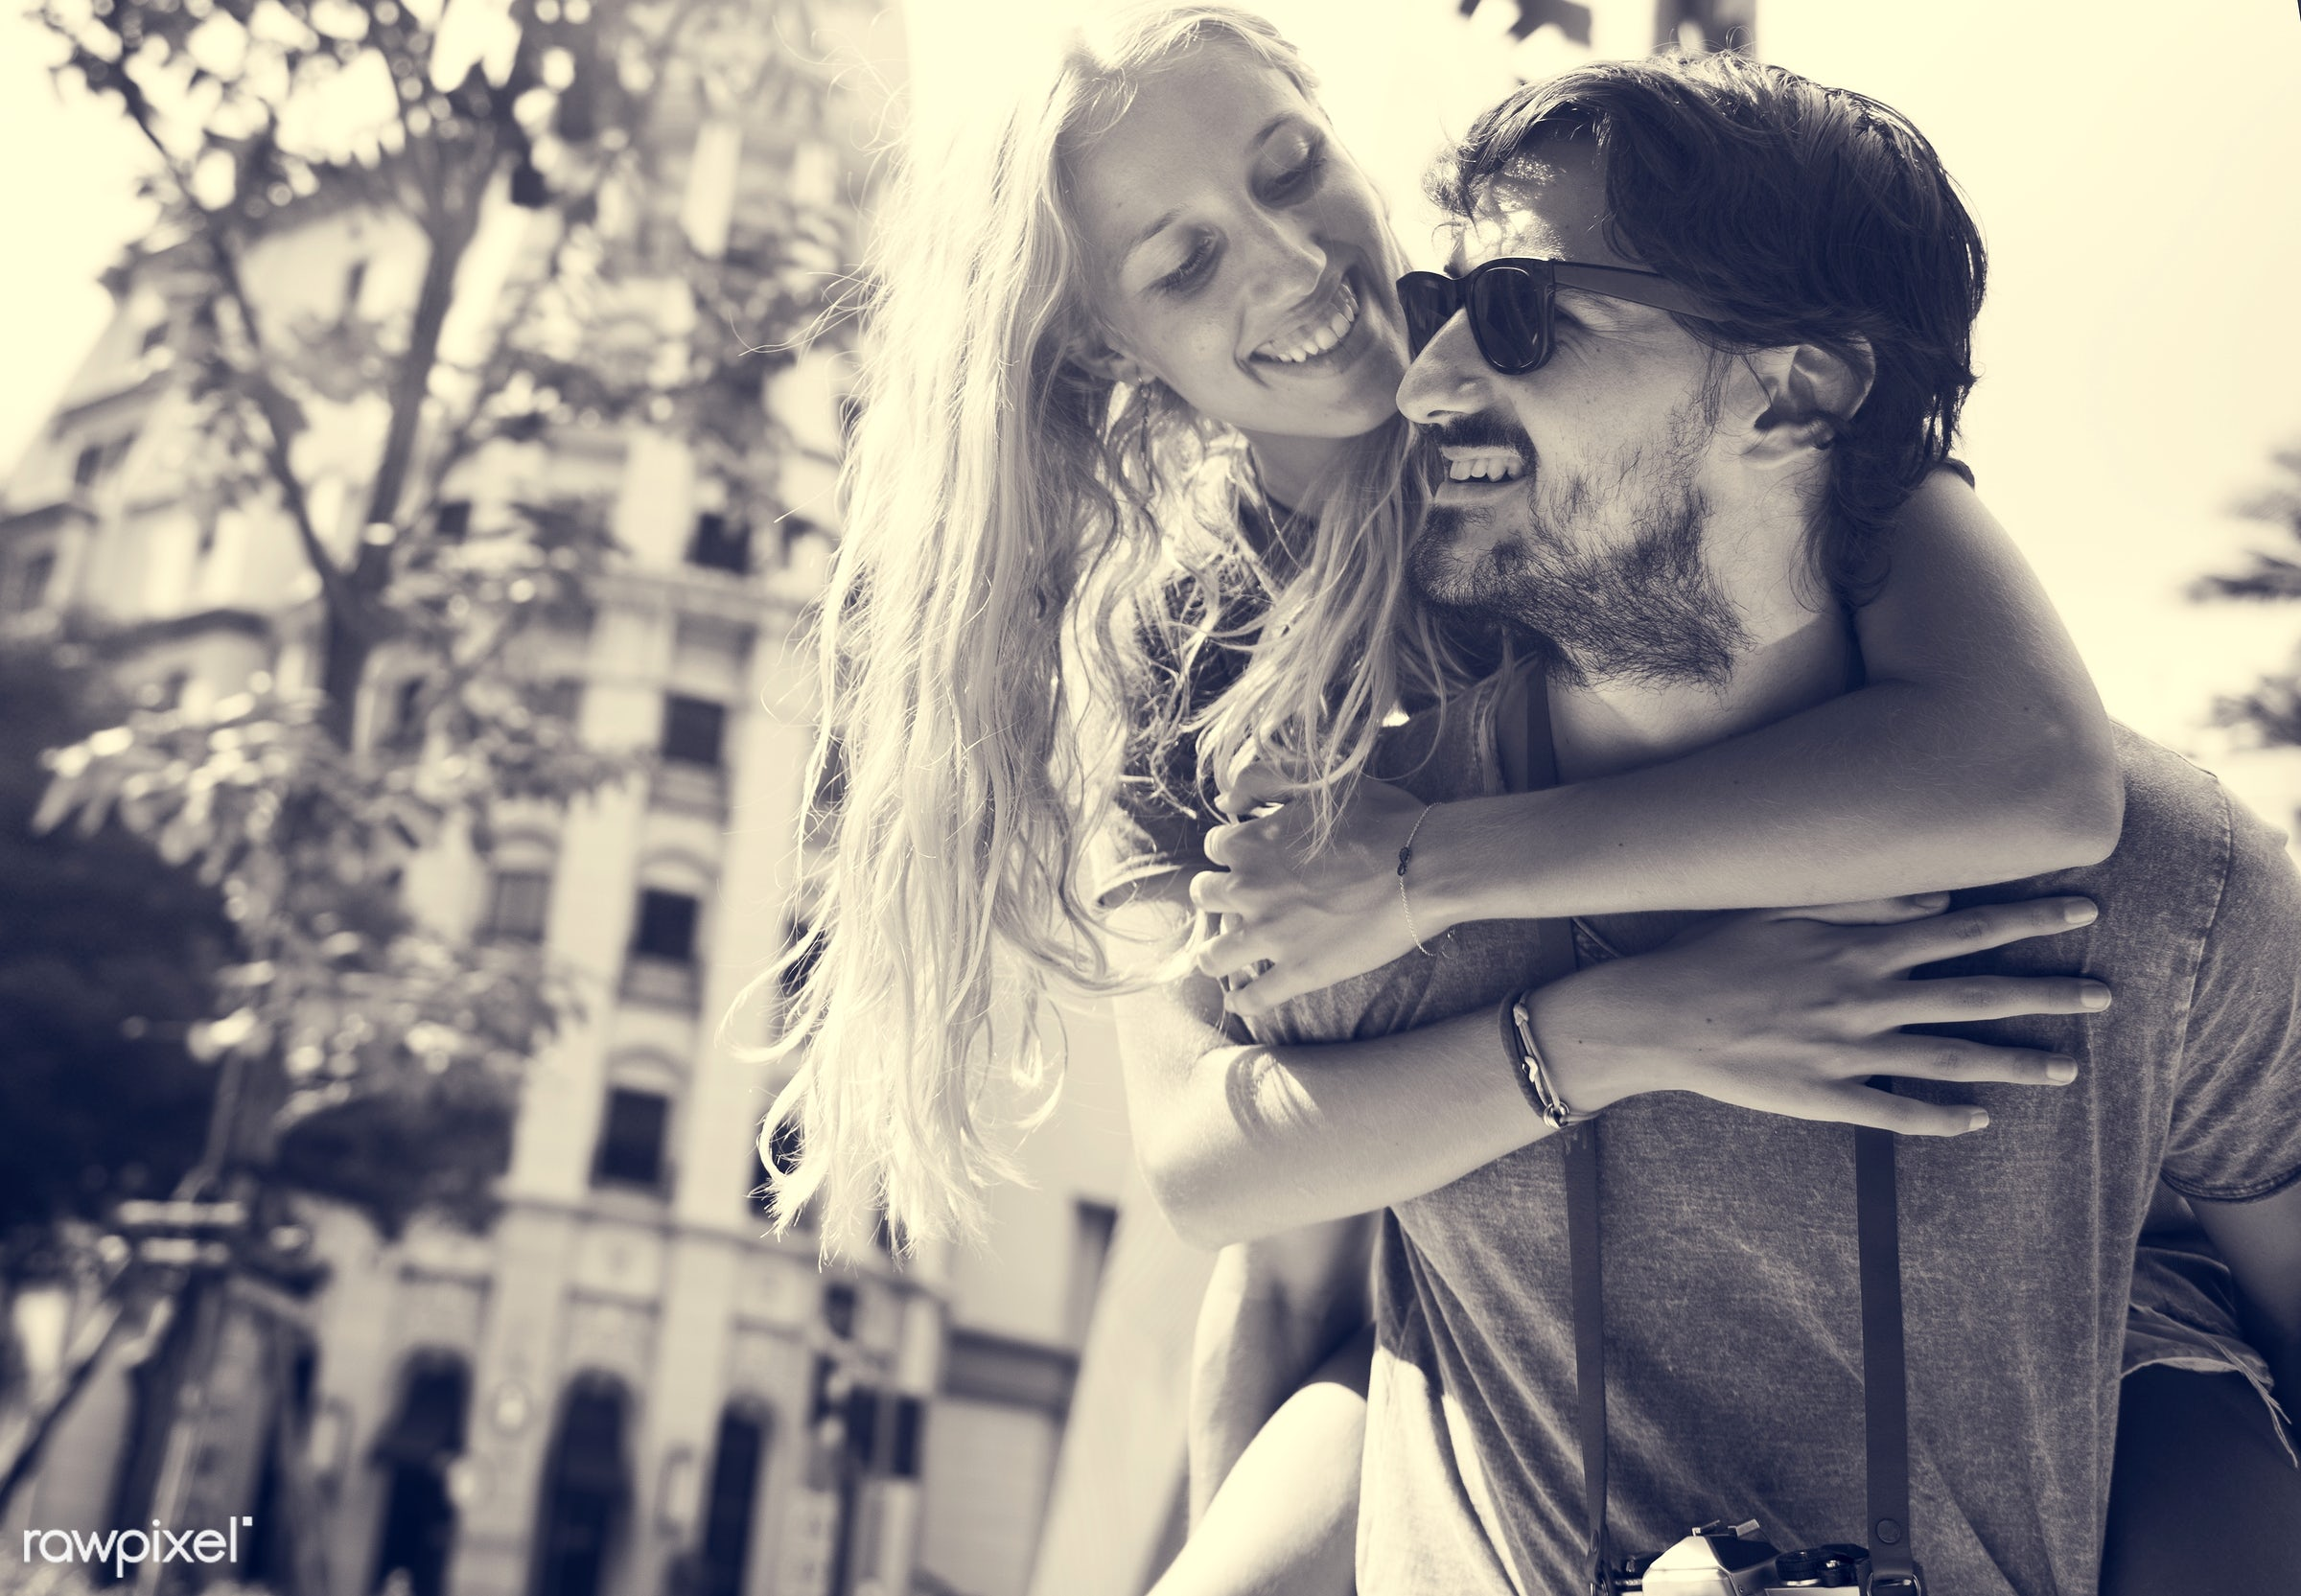 travel, bonding, people, together, city, love, woman, pda, partner, smile, cheerful, smiling, shades, closeness, affection,...